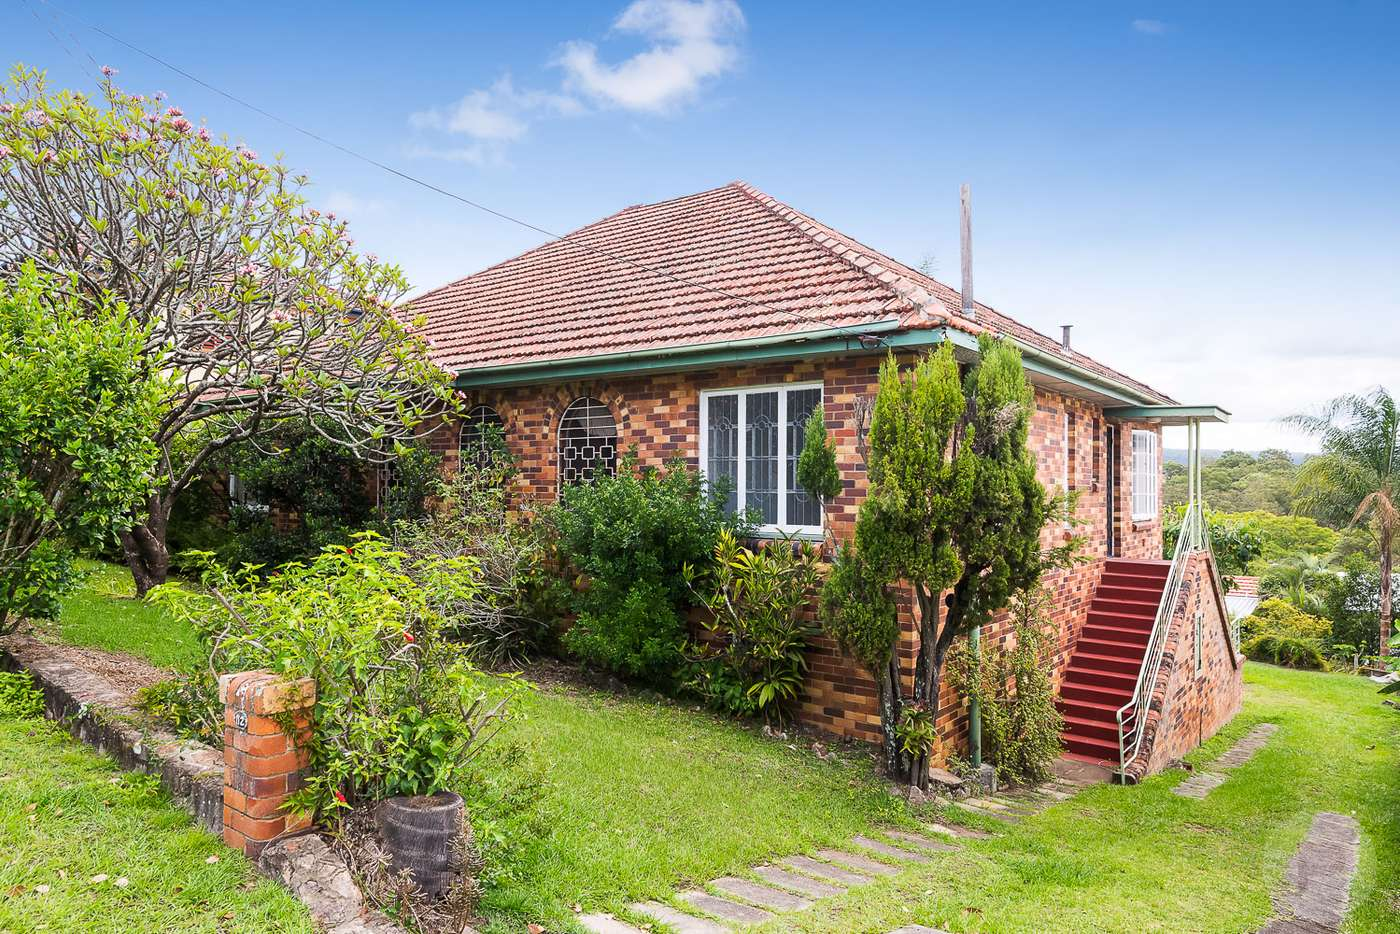 Main view of Homely house listing, 112 Central Avenue, St Lucia QLD 4067